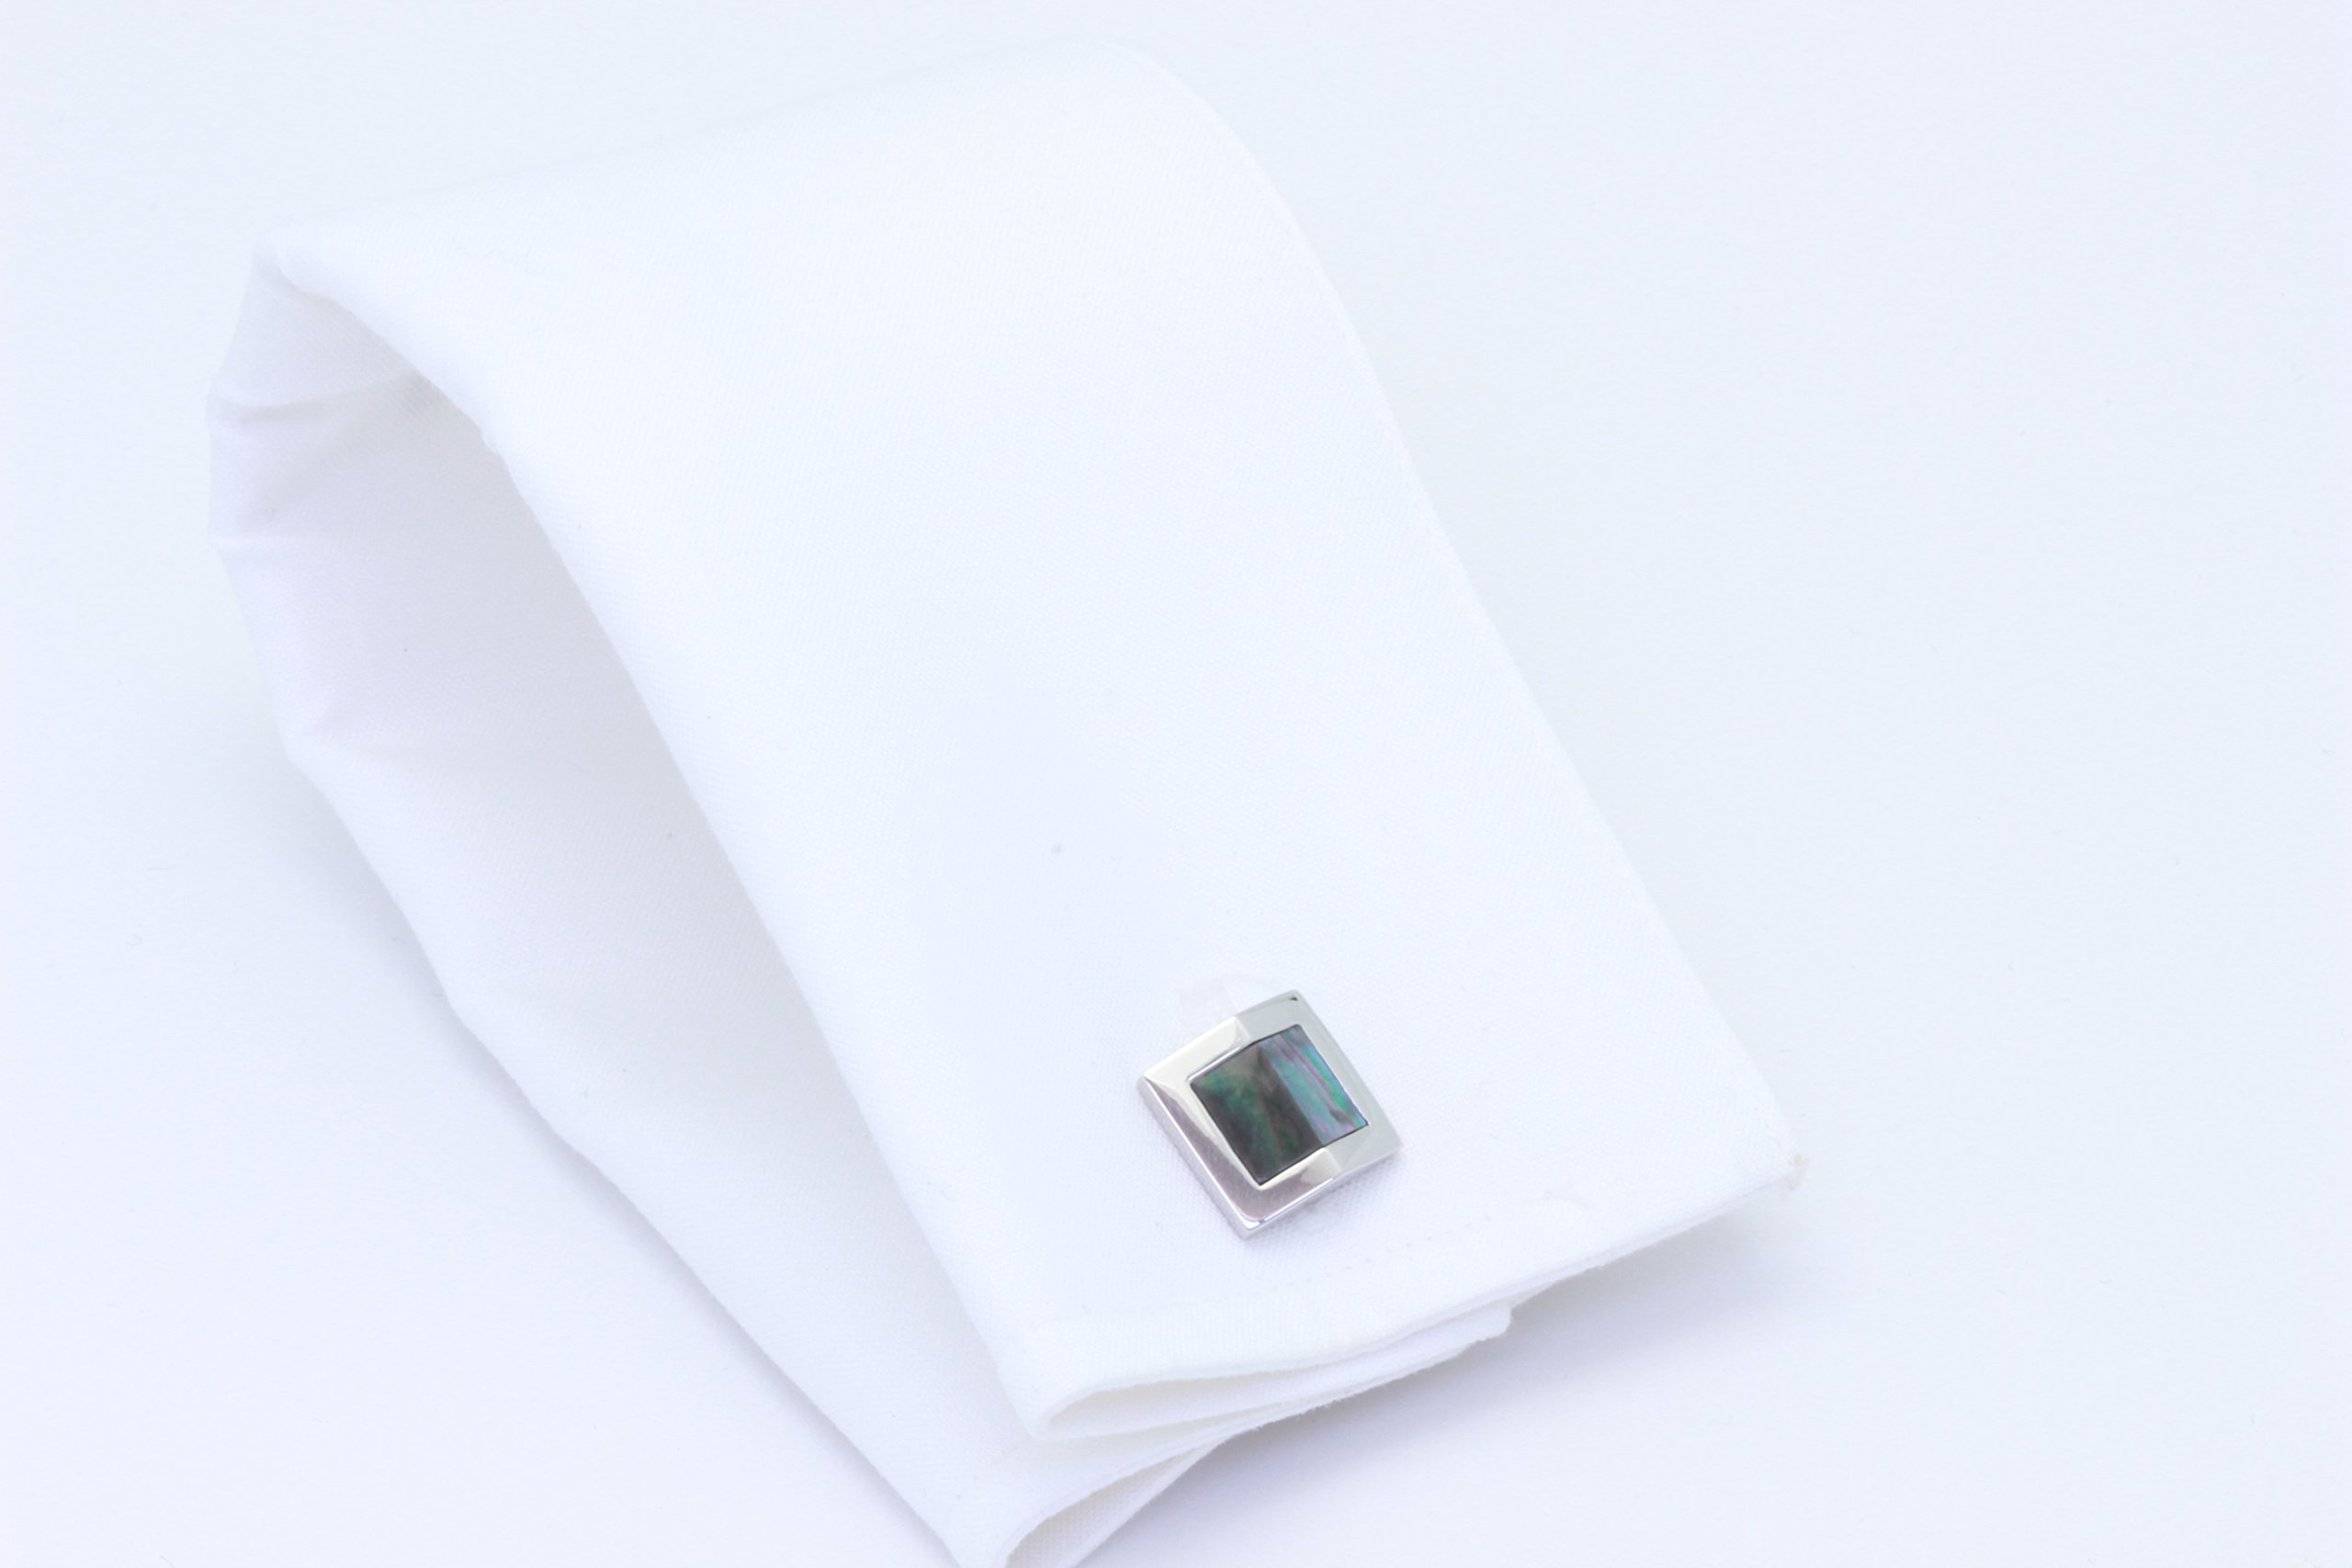 Zsamuel Mens Sterling Silver Black Mother of Pearl Gable Design Cufflinks by Z.Samuel (Image #4)